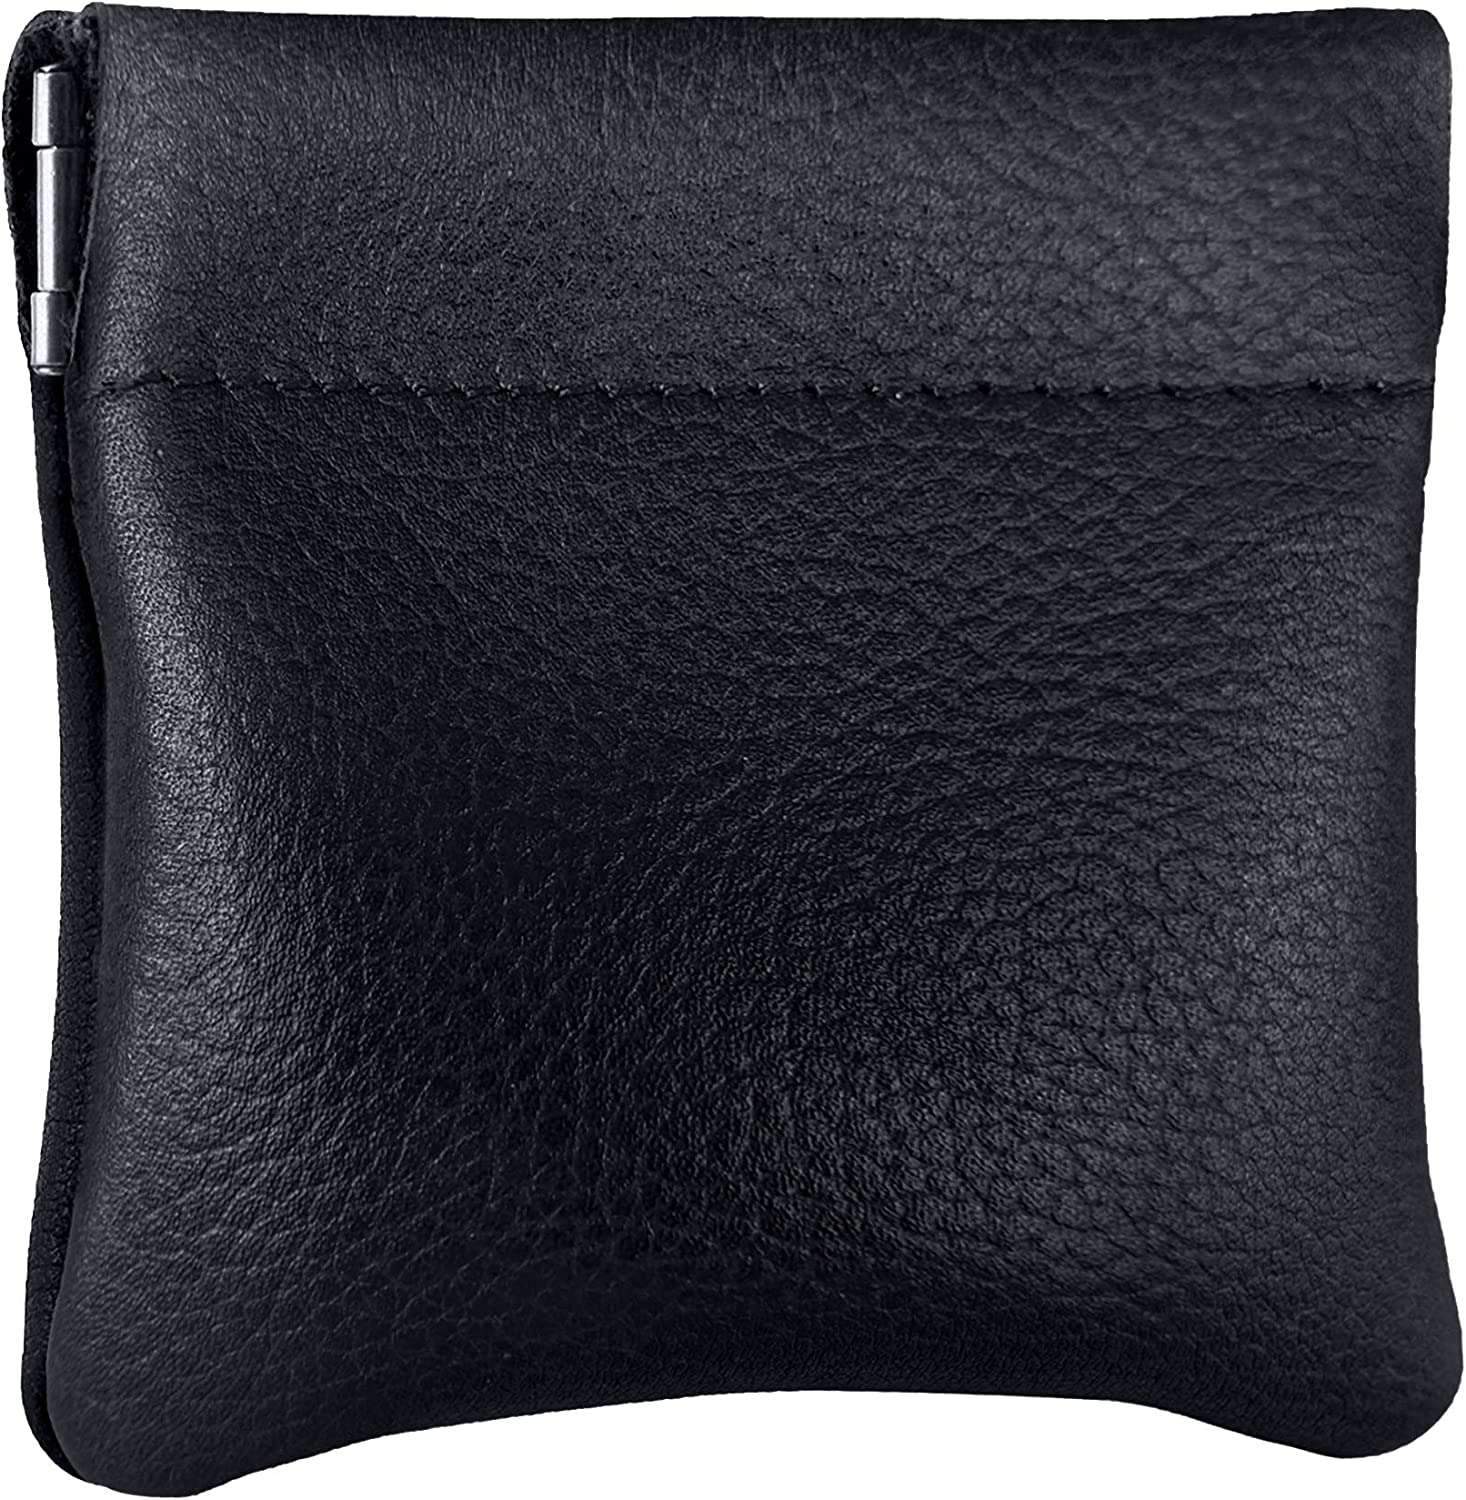 Classic Leather Squeeze Coin Purse change Holder For Men, Pouch size 3.5 in X 3.25 in. high, Navy